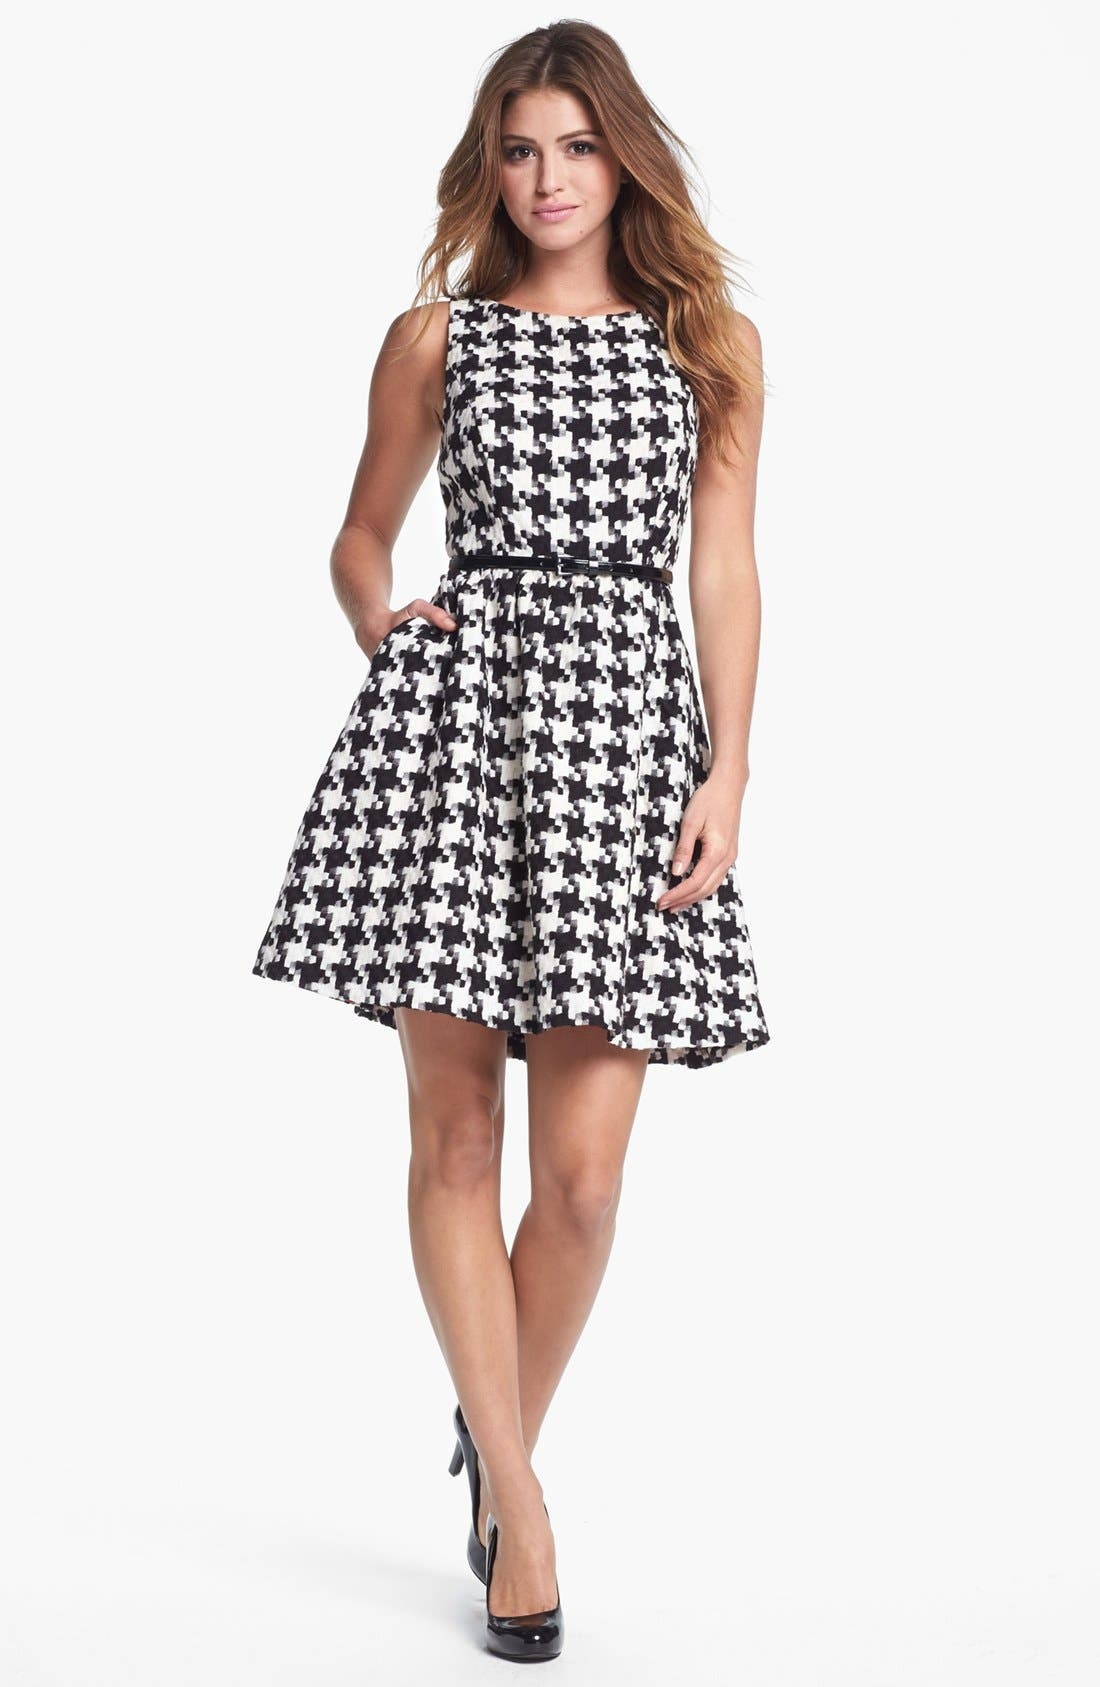 Alternate Image 1 Selected - Jessica Simpson Houndstooth Jacquard Fit & Flare Dress